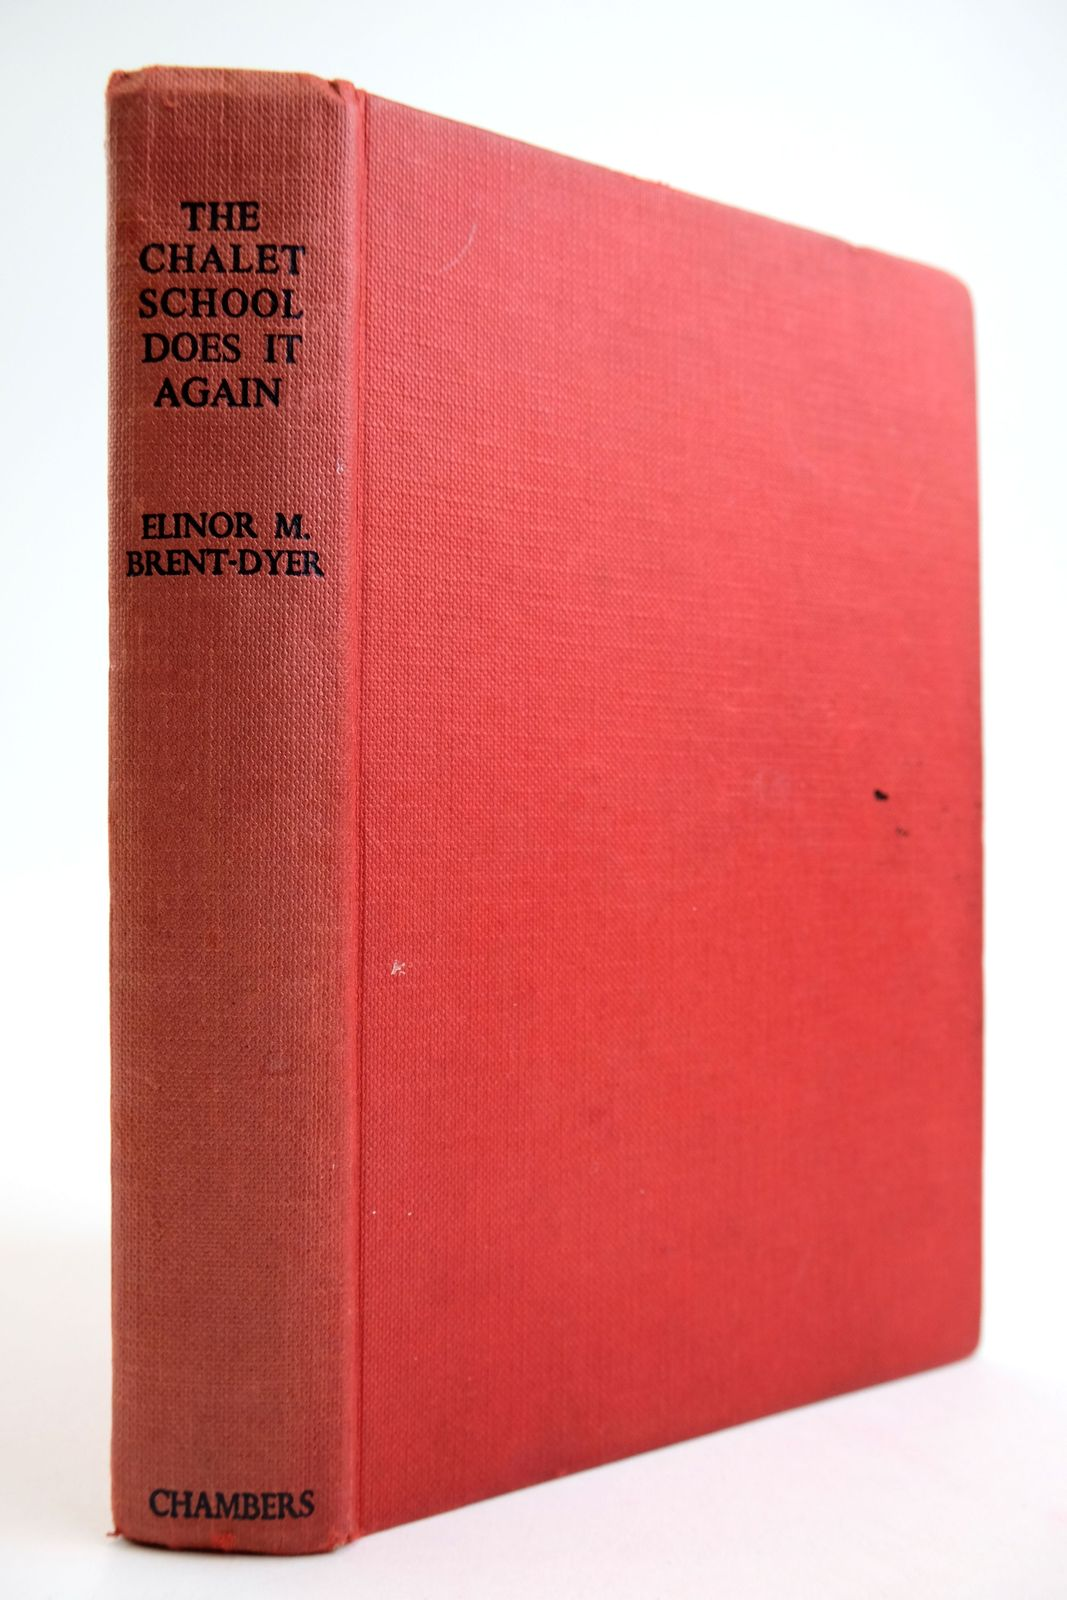 Photo of THE CHALET SCHOOL DOES IT AGAIN written by Brent-Dyer, Elinor M. illustrated by Brook, D. published by W. & R. Chambers Limited (STOCK CODE: 2133649)  for sale by Stella & Rose's Books